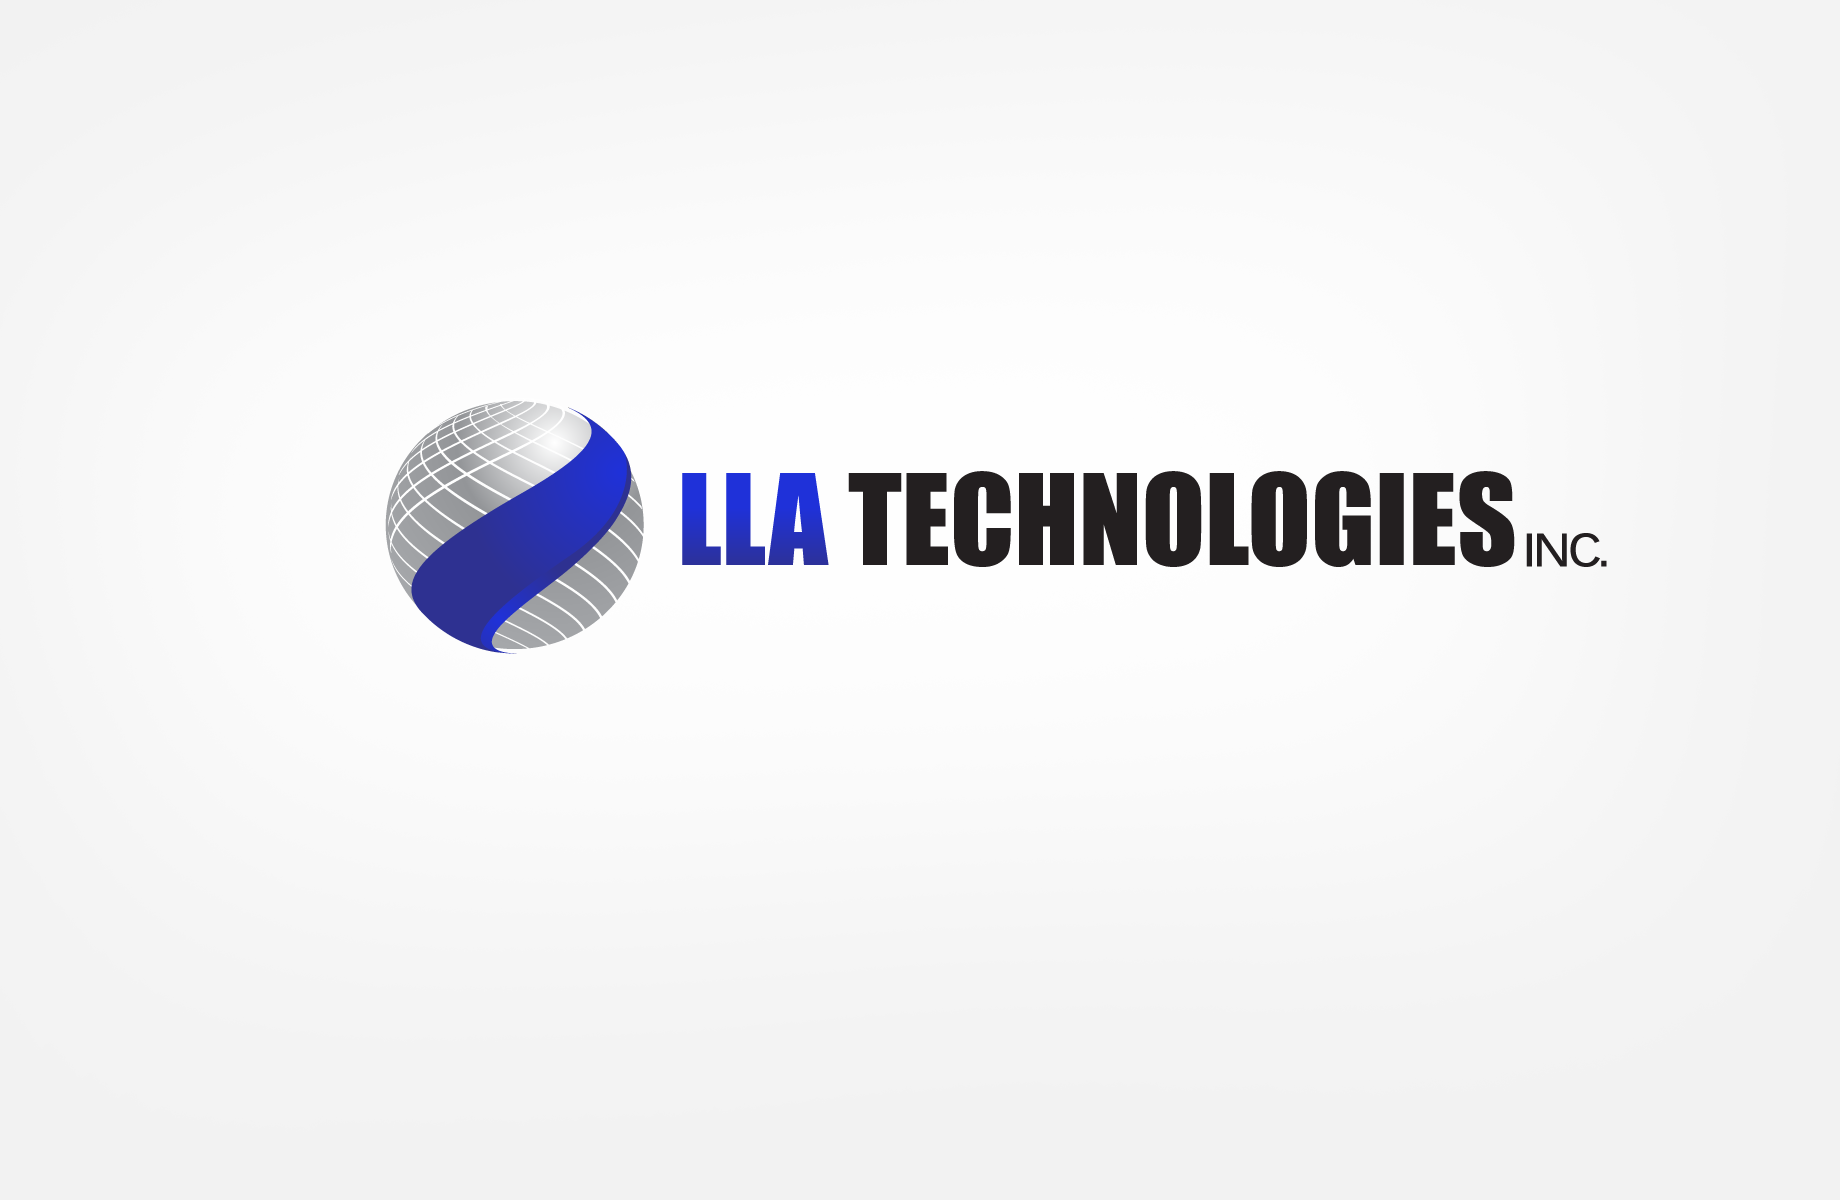 Logo Design by Jan Chua - Entry No. 32 in the Logo Design Contest Inspiring Logo Design for LLA Technologies Inc..